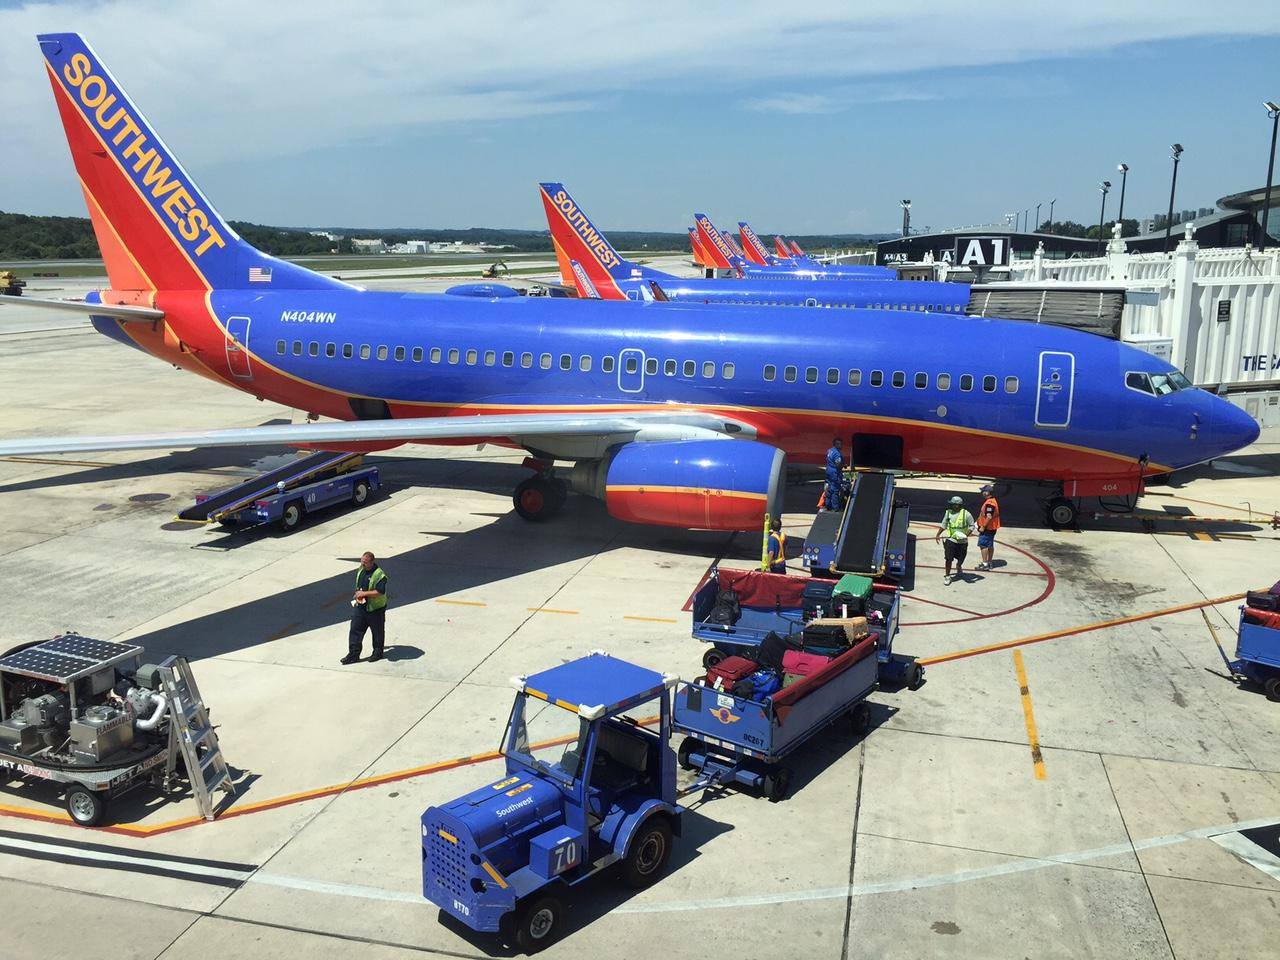 Driver transported after truck crashes into Southwest plane at BWI airport